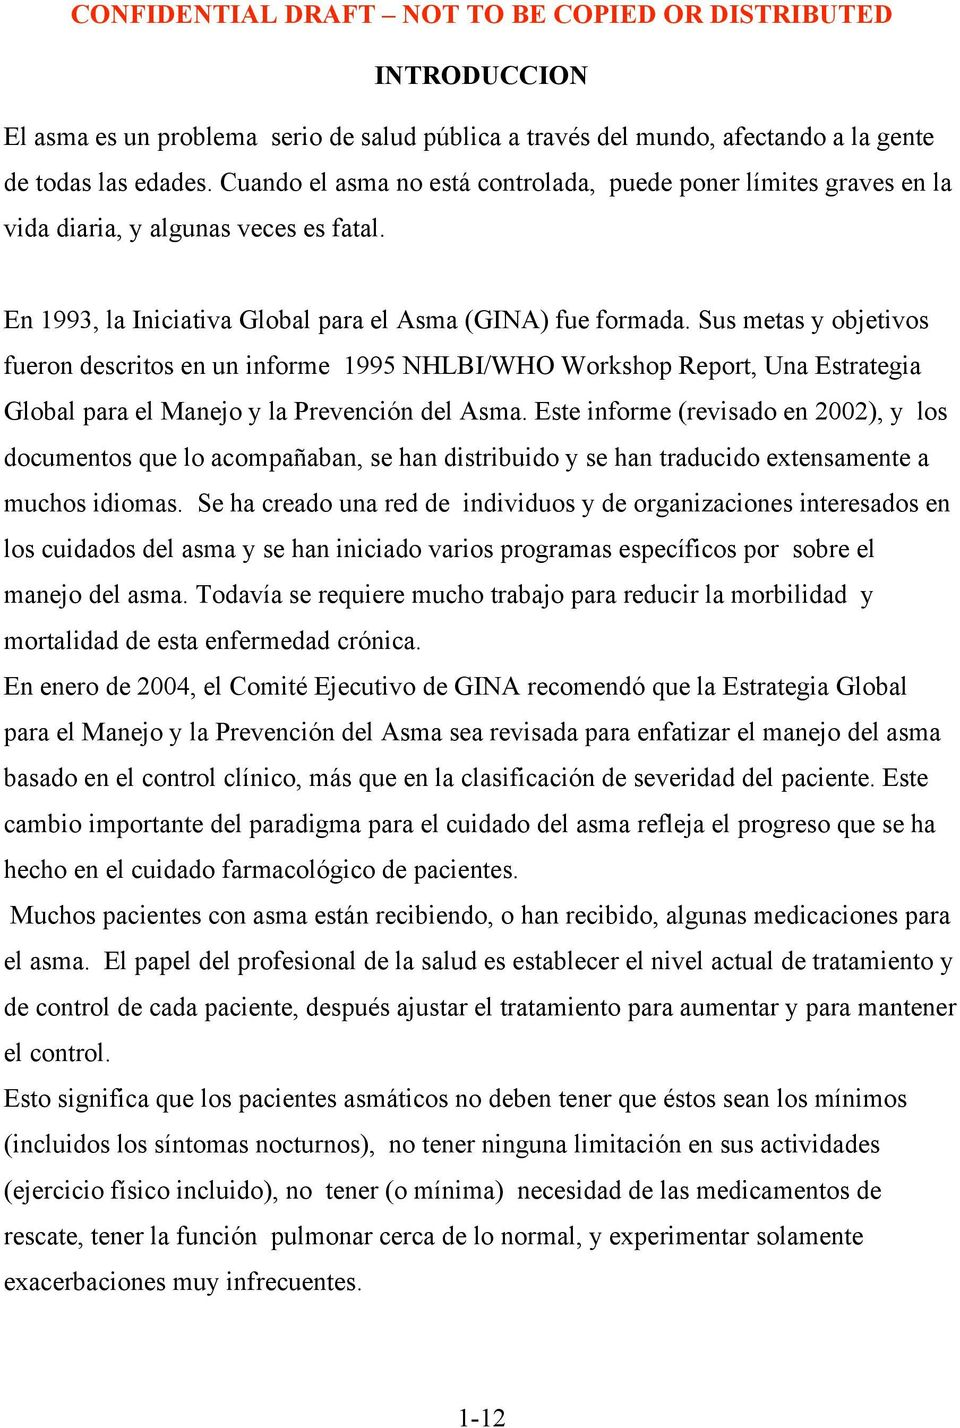 Sus metas y objetivos fueron descritos en un informe 1995 NHLBI/WHO Workshop Report, Una Estrategia Global para el Manejo y la Prevención del Asma.